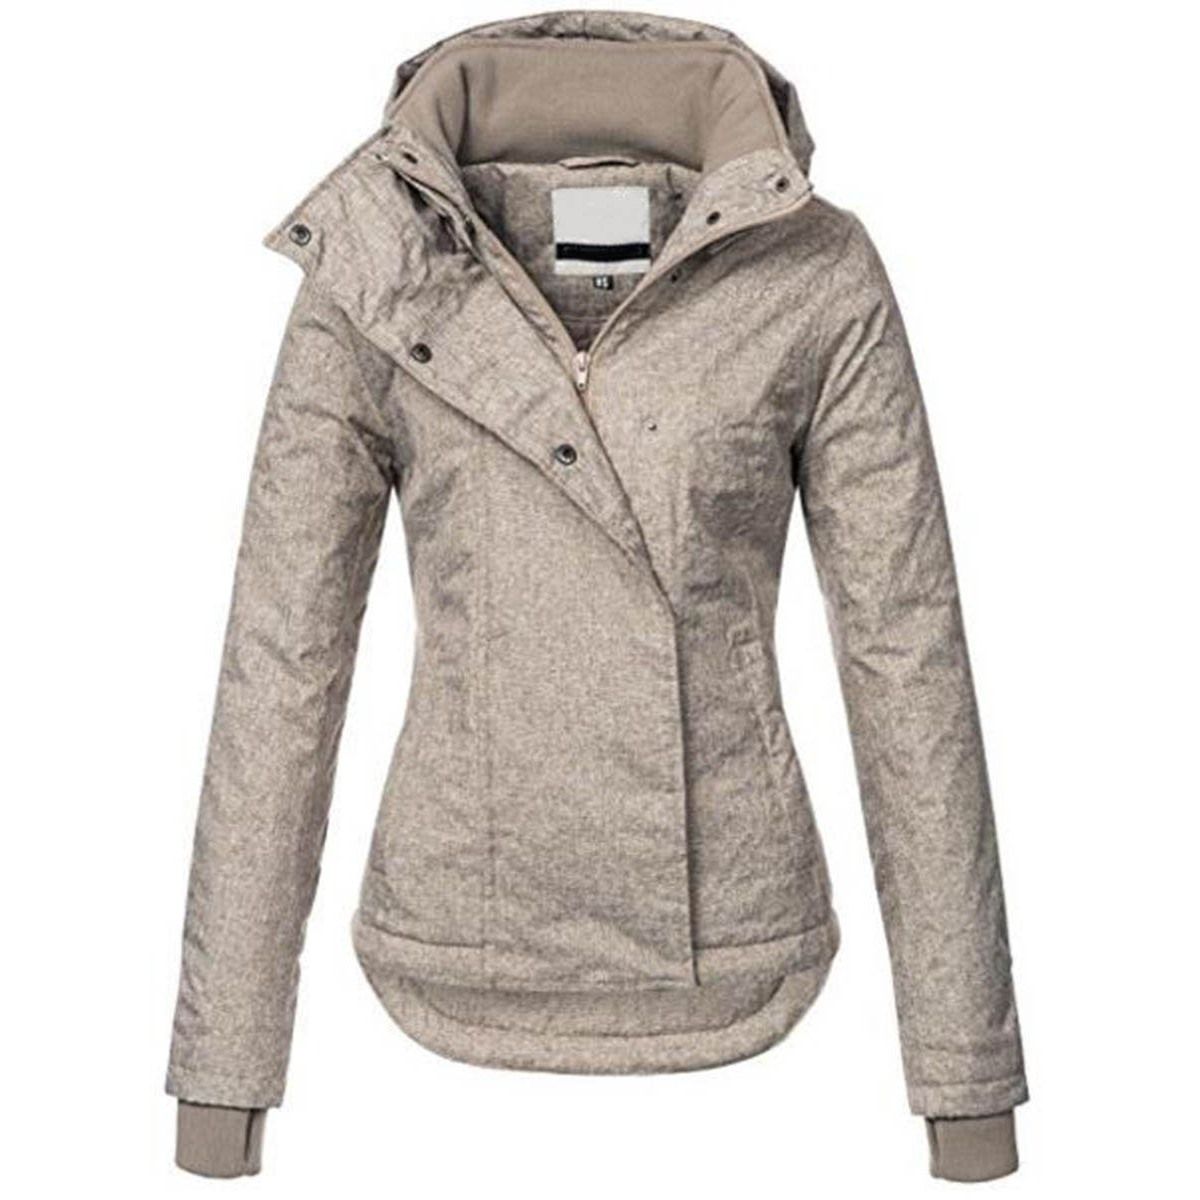 Women Casual   Basic   Outwear   Jacket   Plus Size Solid Hooded OverCoat Winter Lapel Slim Bomber   Jacket   Warm Thick Top Street   Jacket